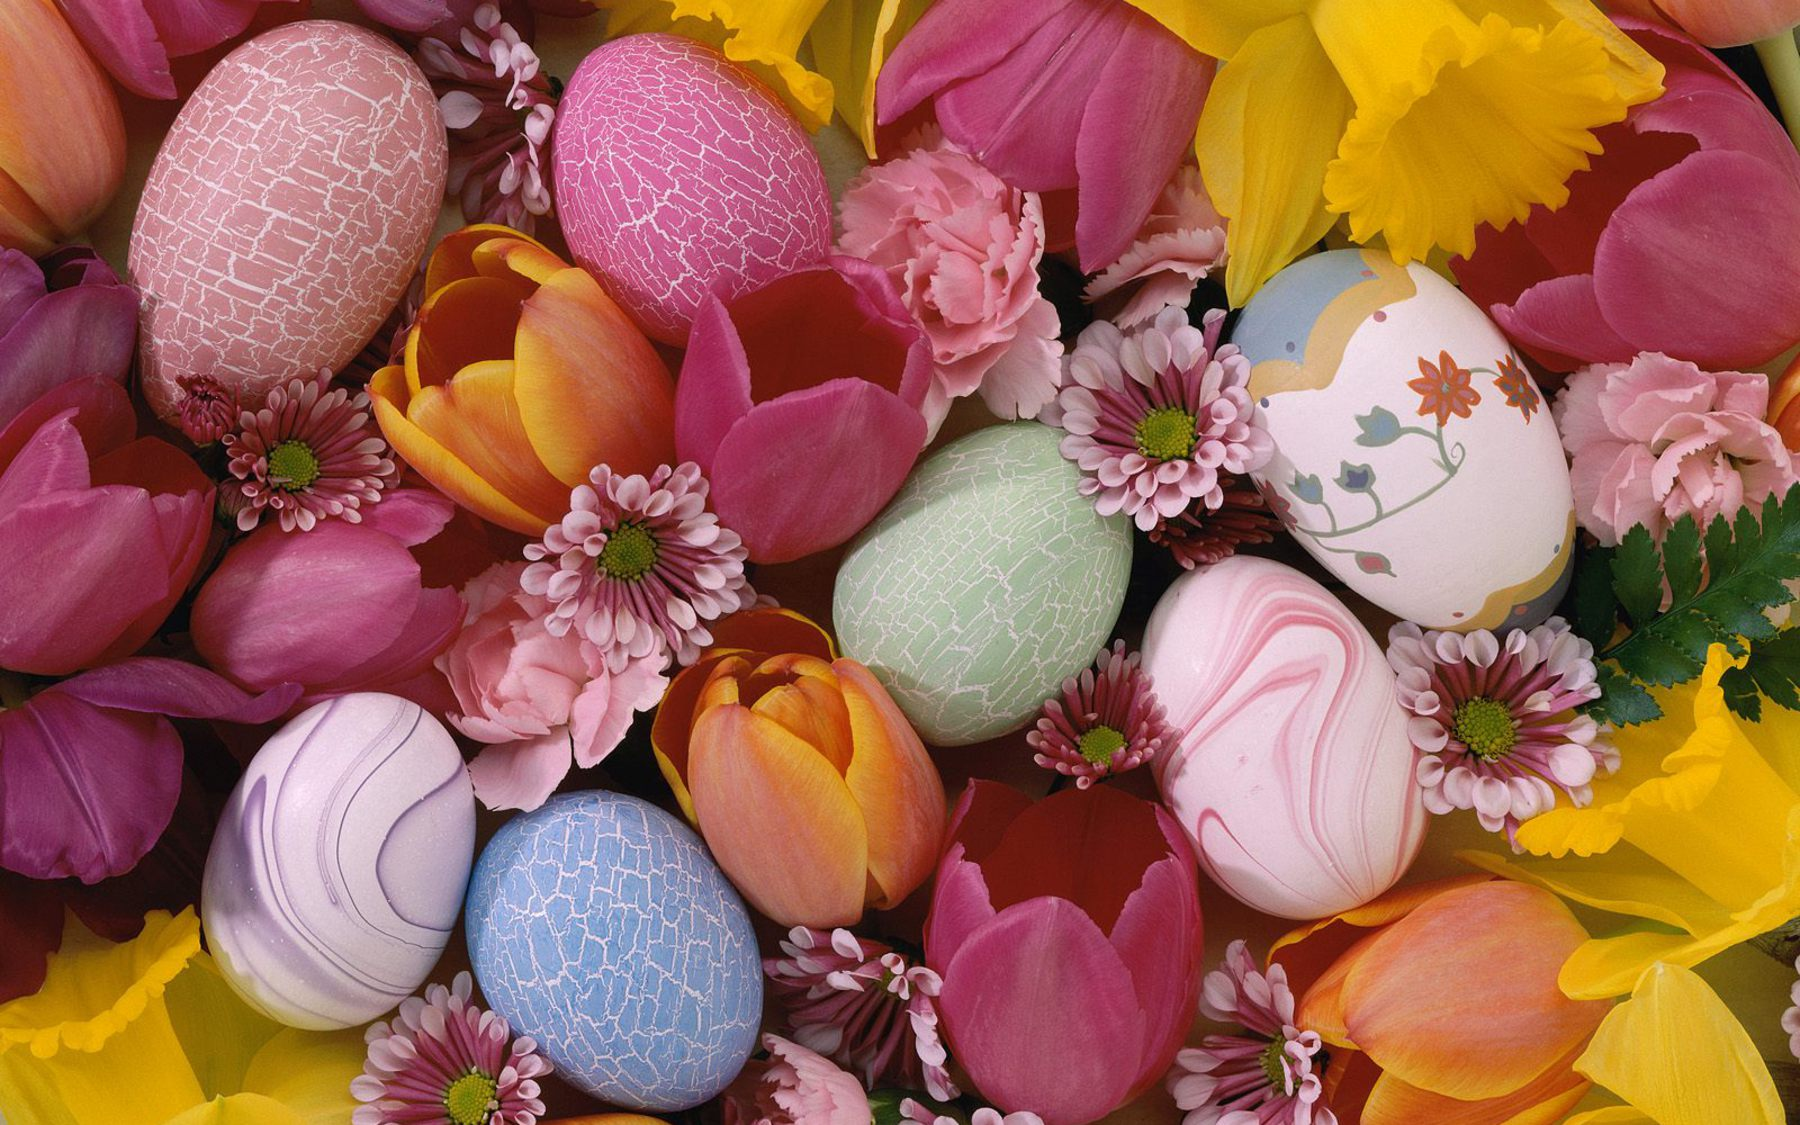 Easter Day Wallpapers HD Easter Images 1800x1125